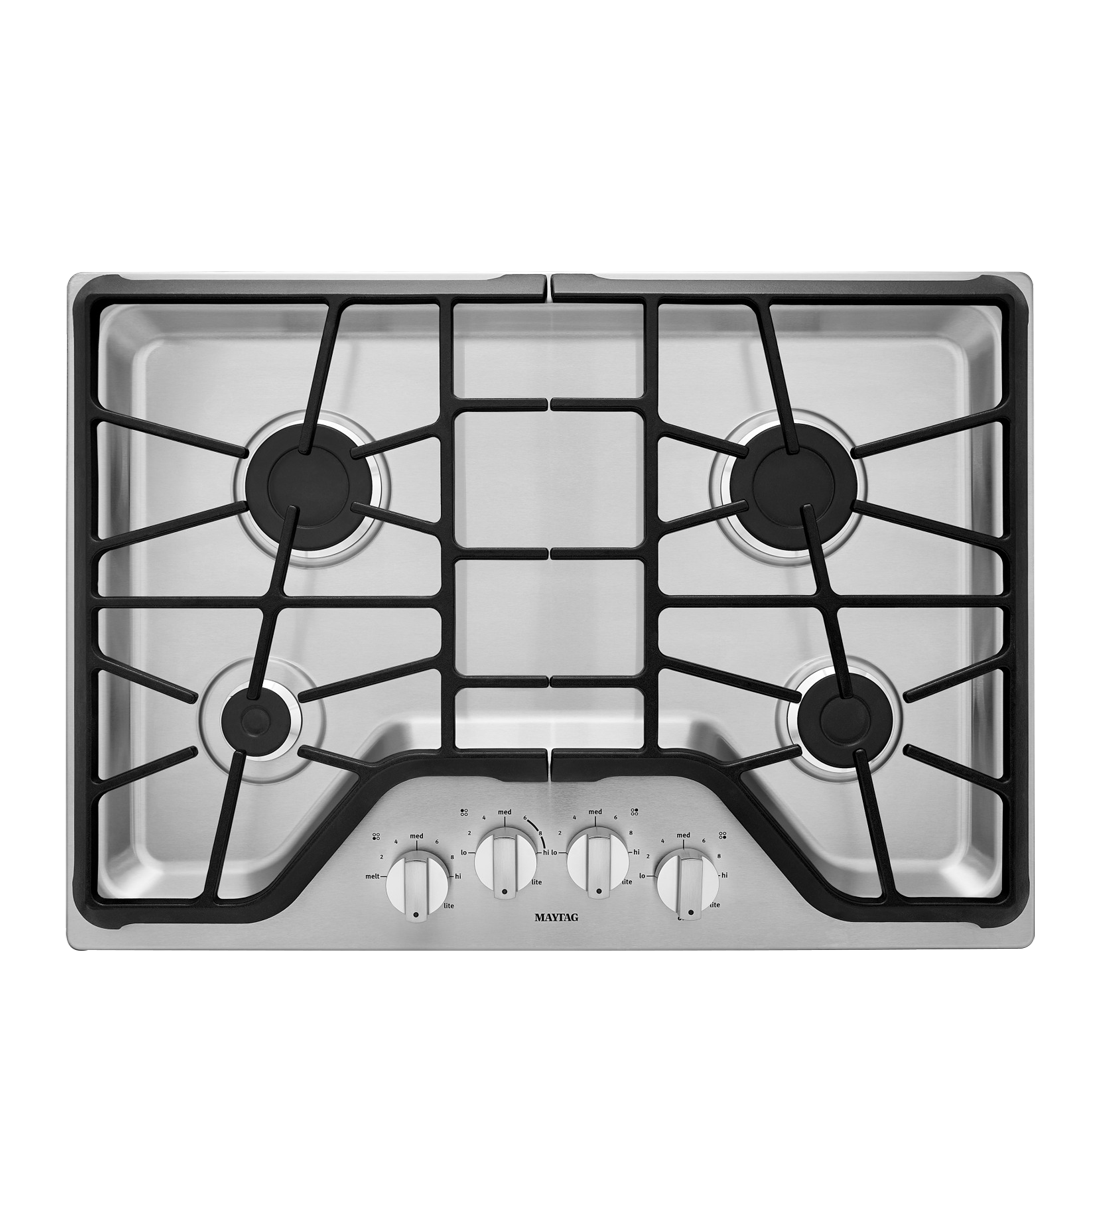 Maytag Cooktop in Stainless Steel color showcased by Corbeil Electro Store